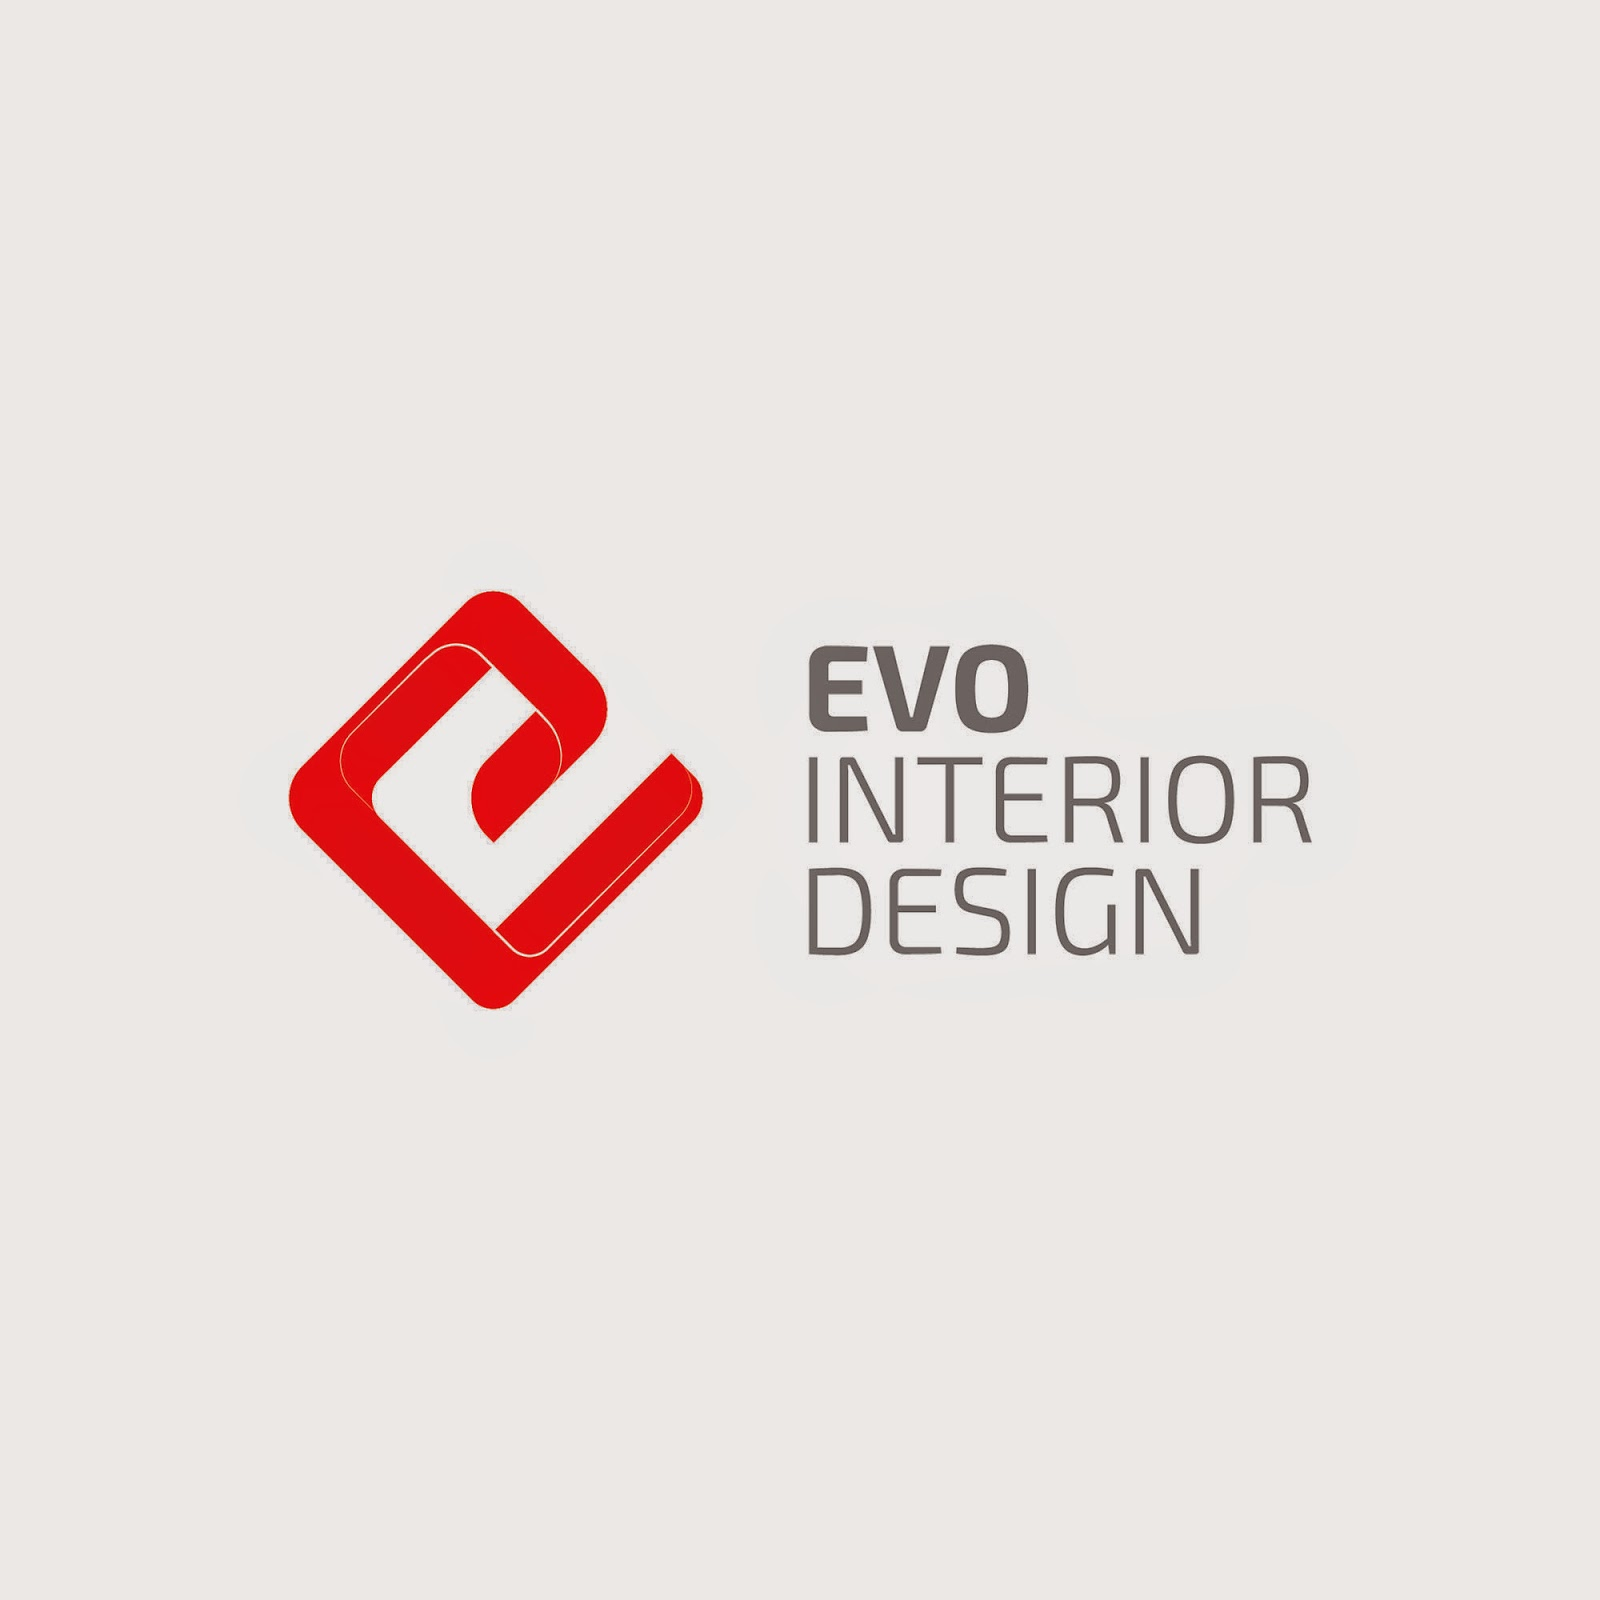 Another Interior Design Logos Ideas For Your Inspiration